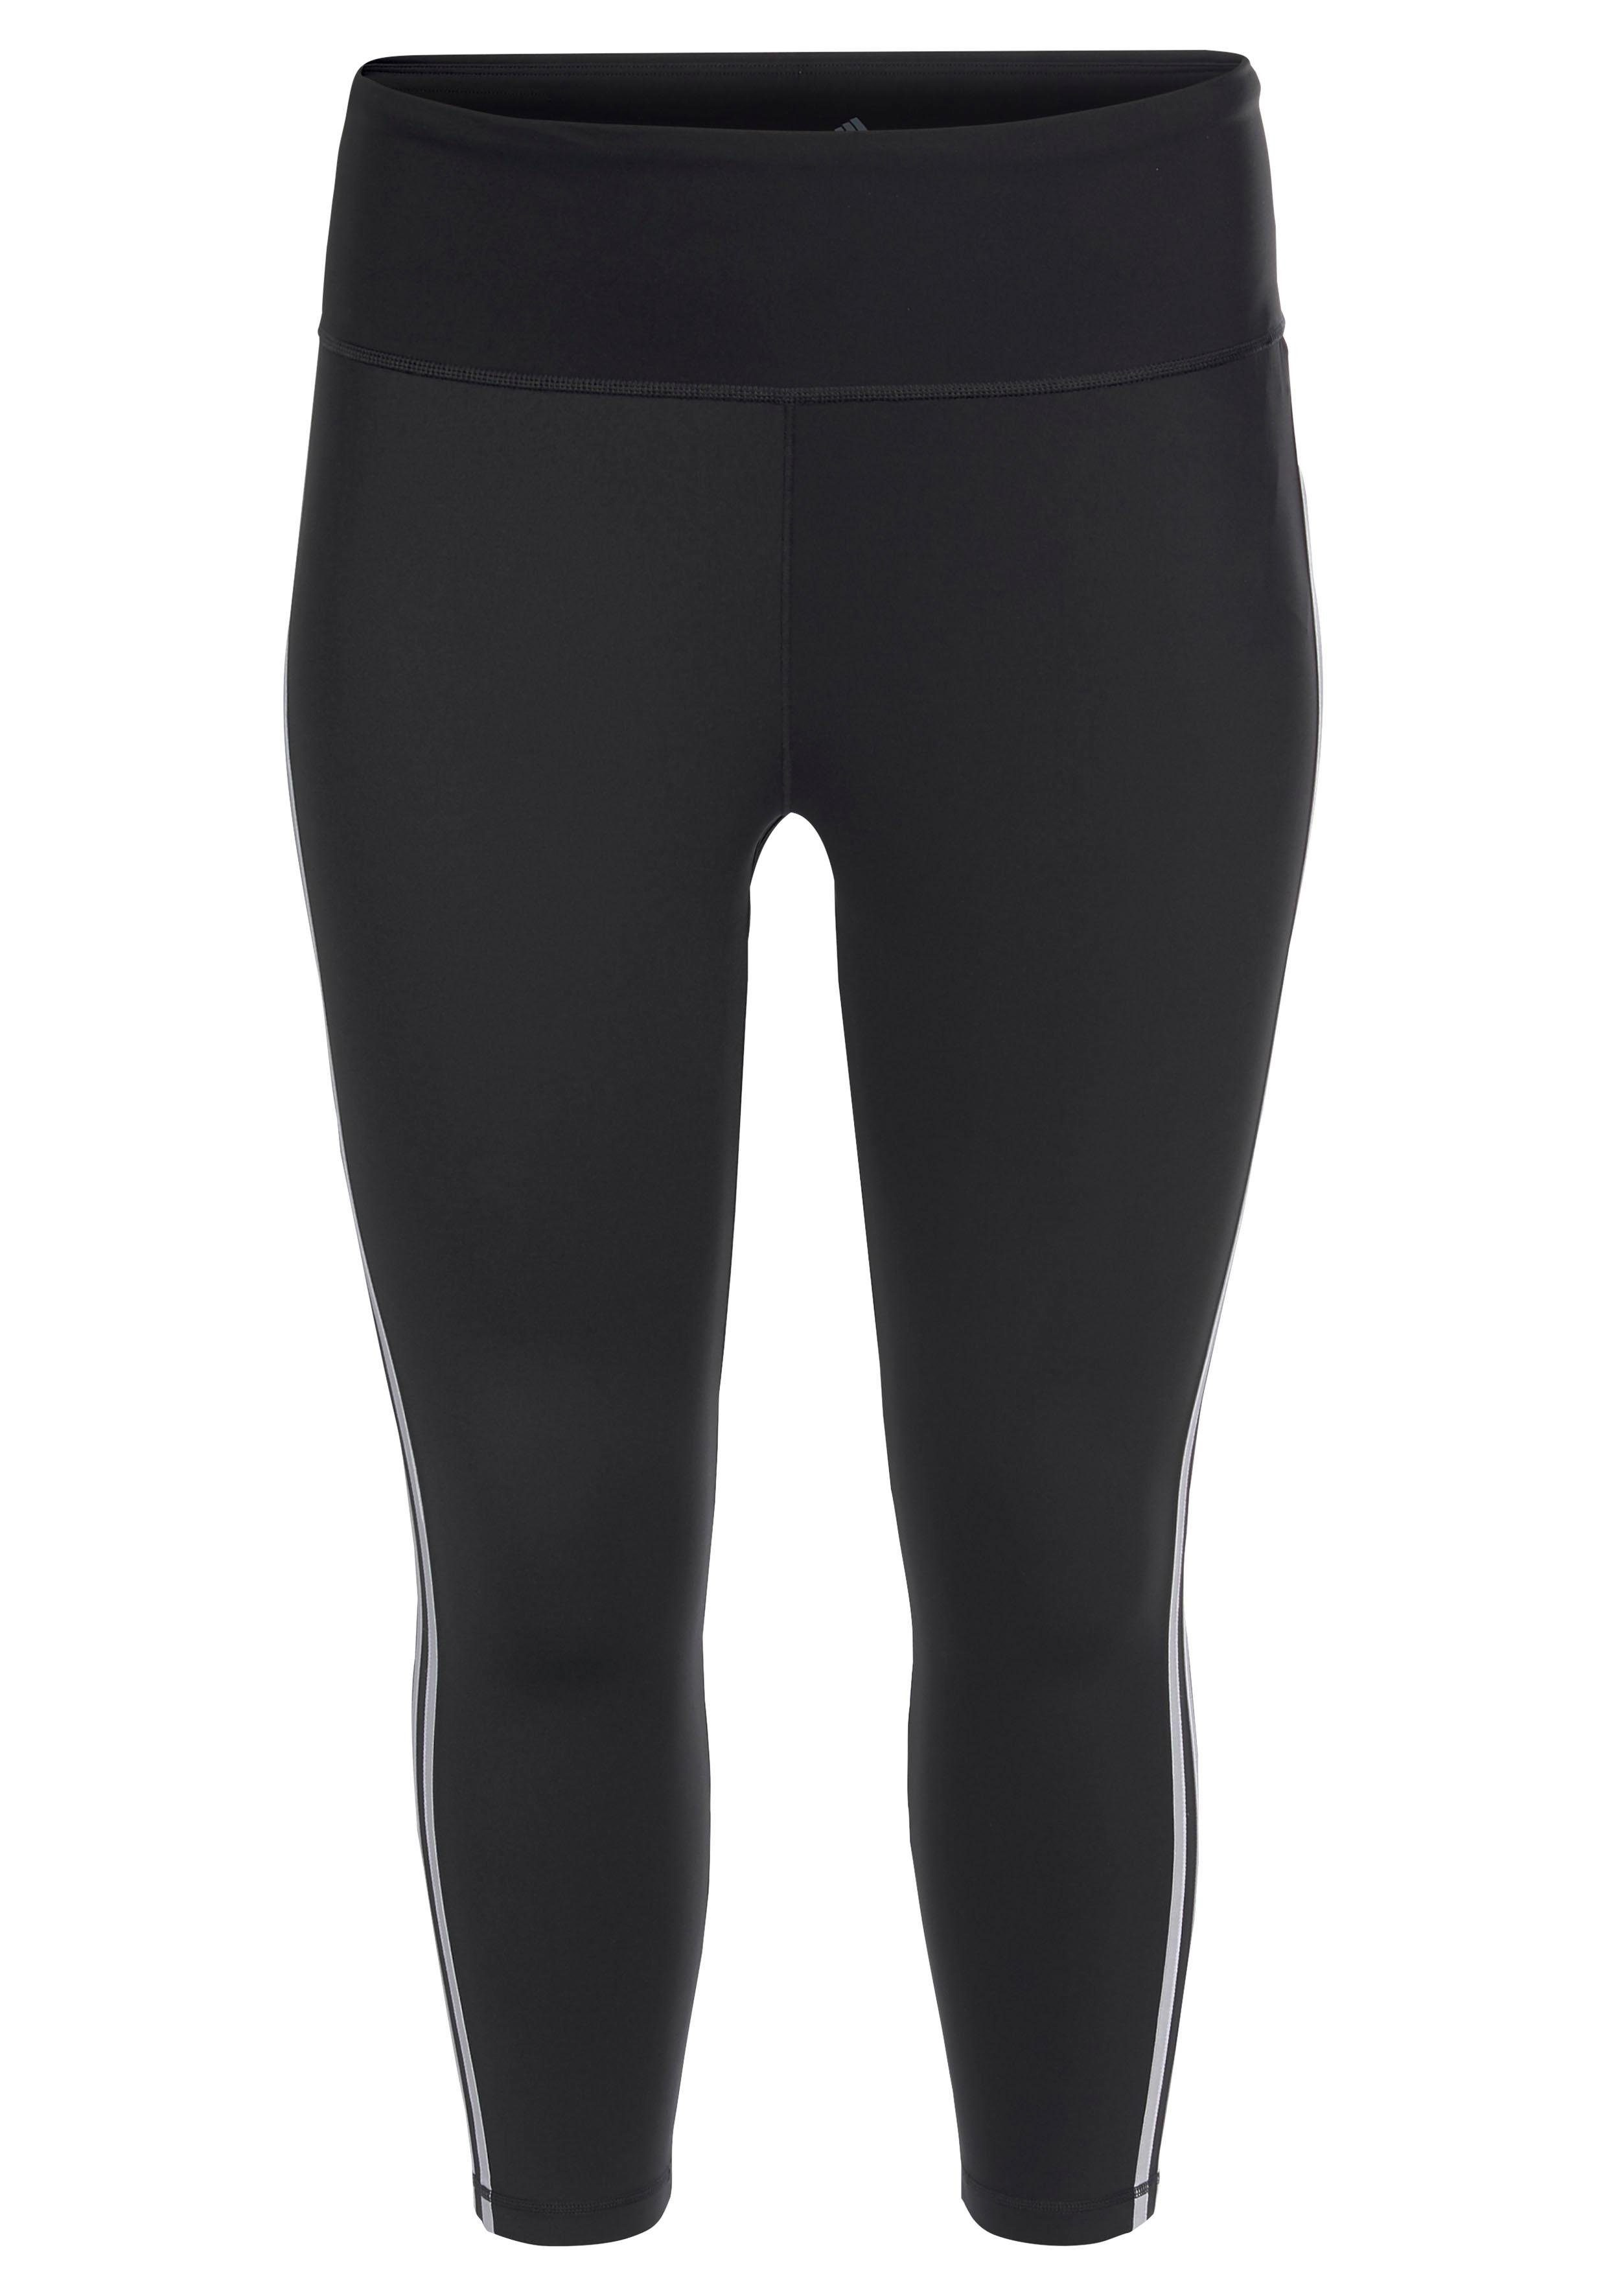 Adidas Performance Functionele Tights 3 Stripes 7/8 In De Online Shop - Geweldige Prijs